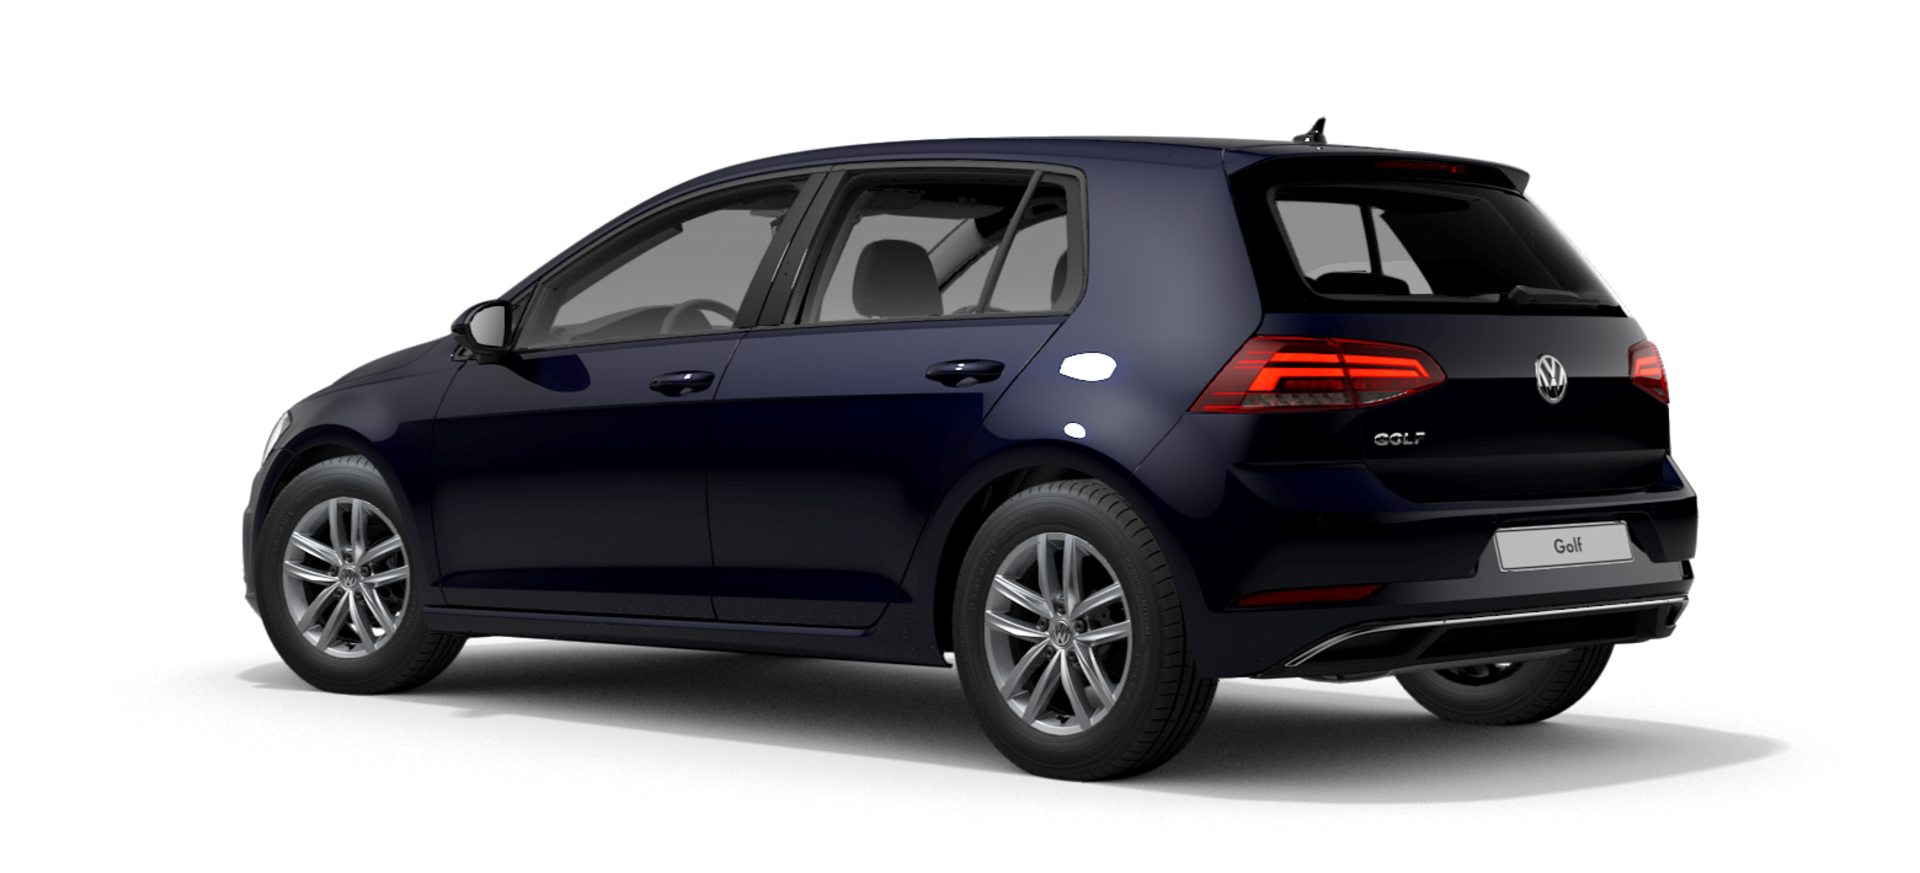 Golf Comfortline 1.5 TSI ACT DSG / 150 CP/110 kW / 1.5l / Direct Shift Gearbox / 4-usi : Volkswagen Golf